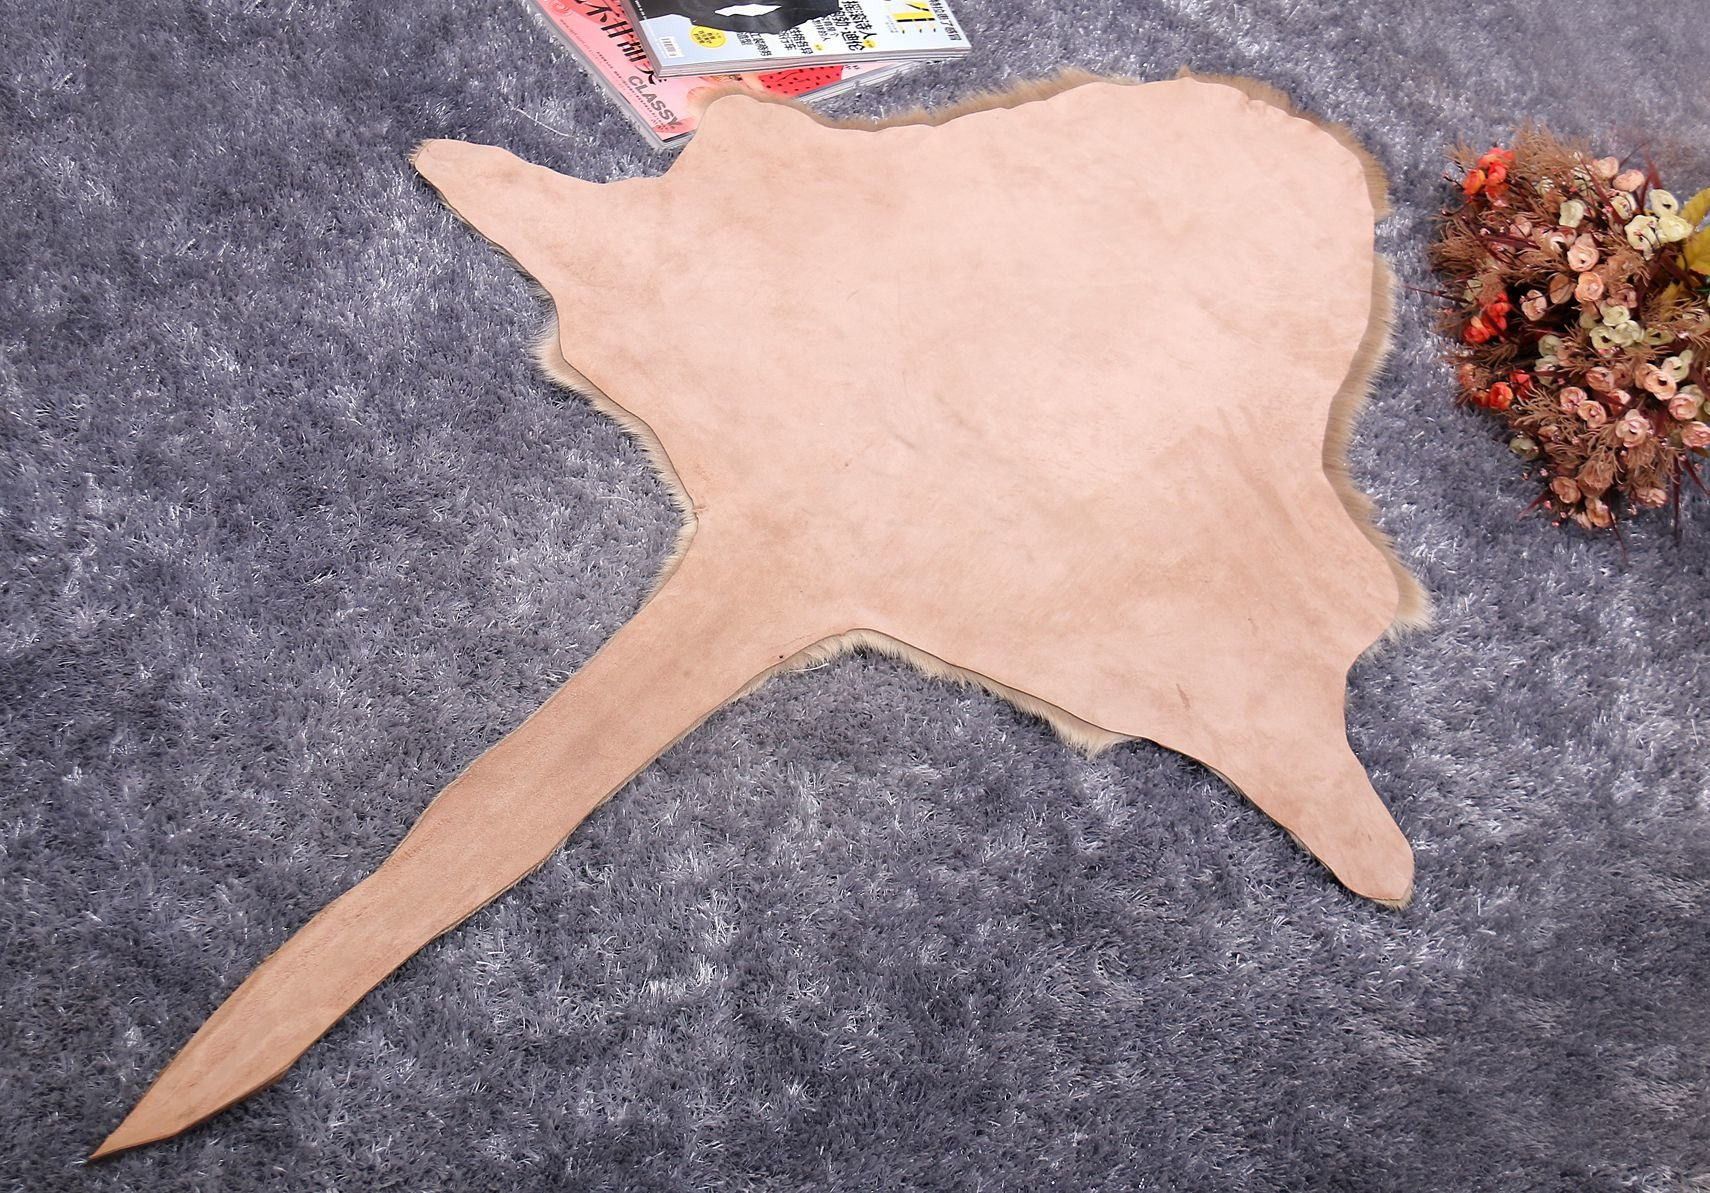 the rug of kangaroo skin is used as home decoration, carpet and gift